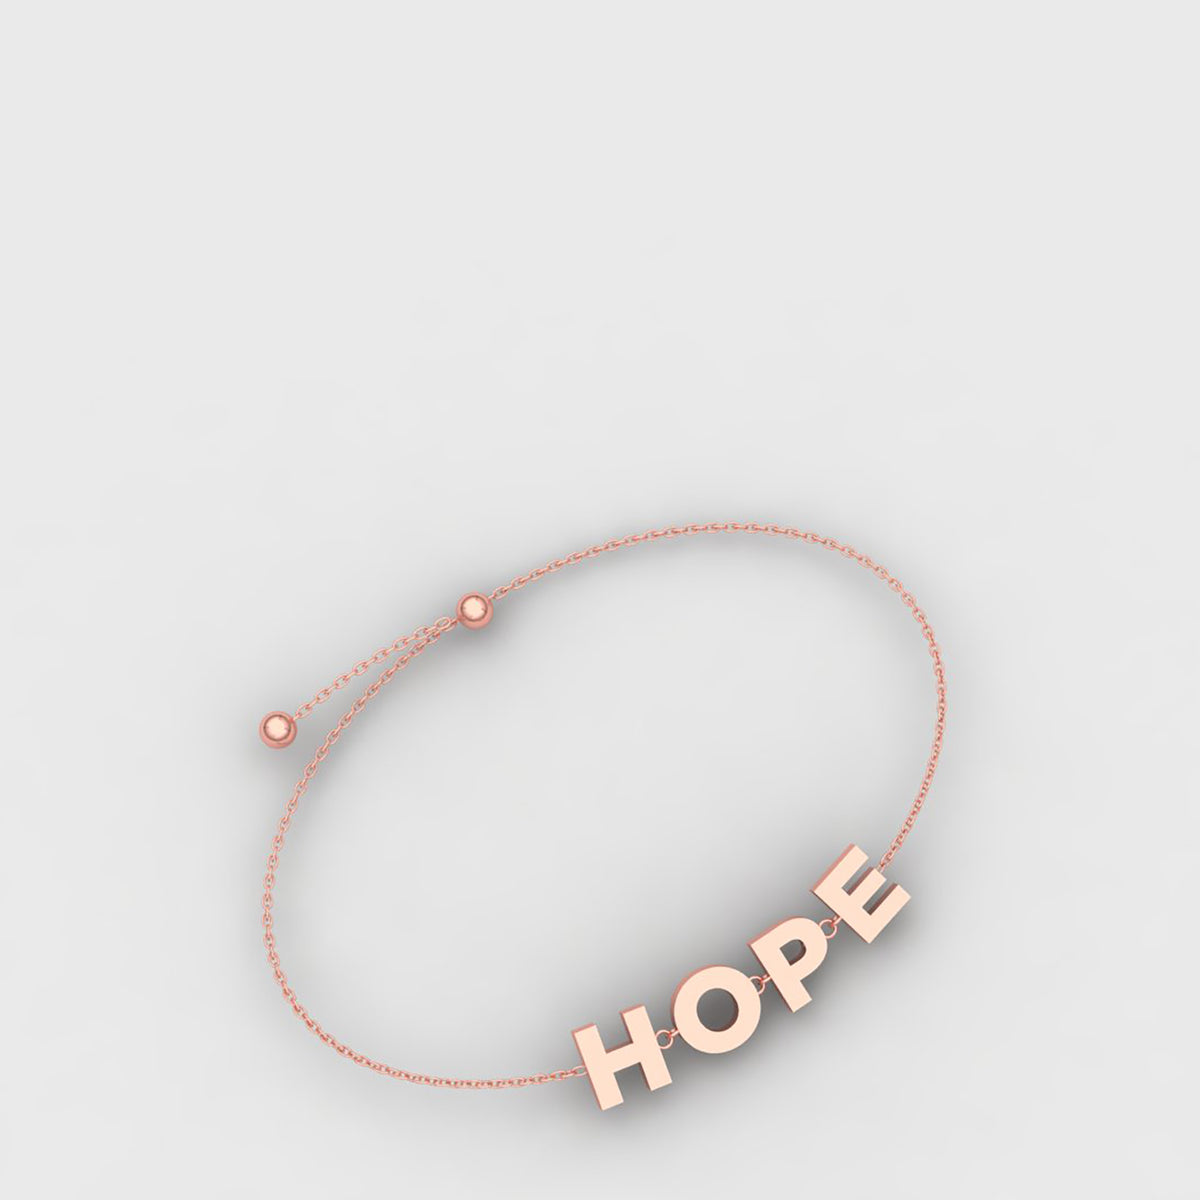 18k Rose Gold Hope Bracelet